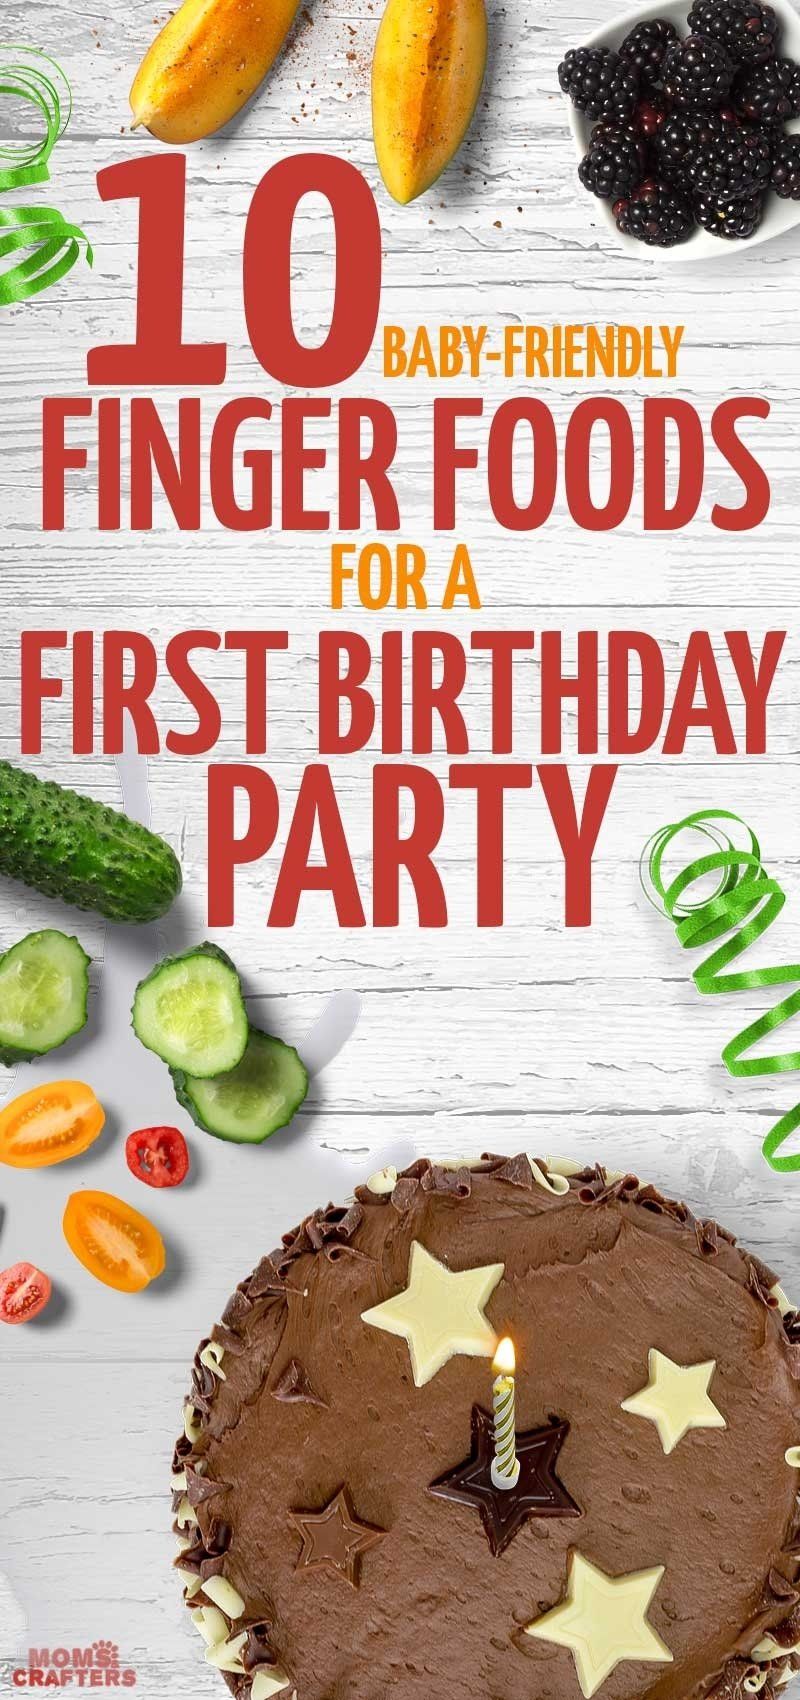 10 Wonderful First Birthday Party Food Ideas 10 great finger foods for a first birthday party moms and crafters 1 2020